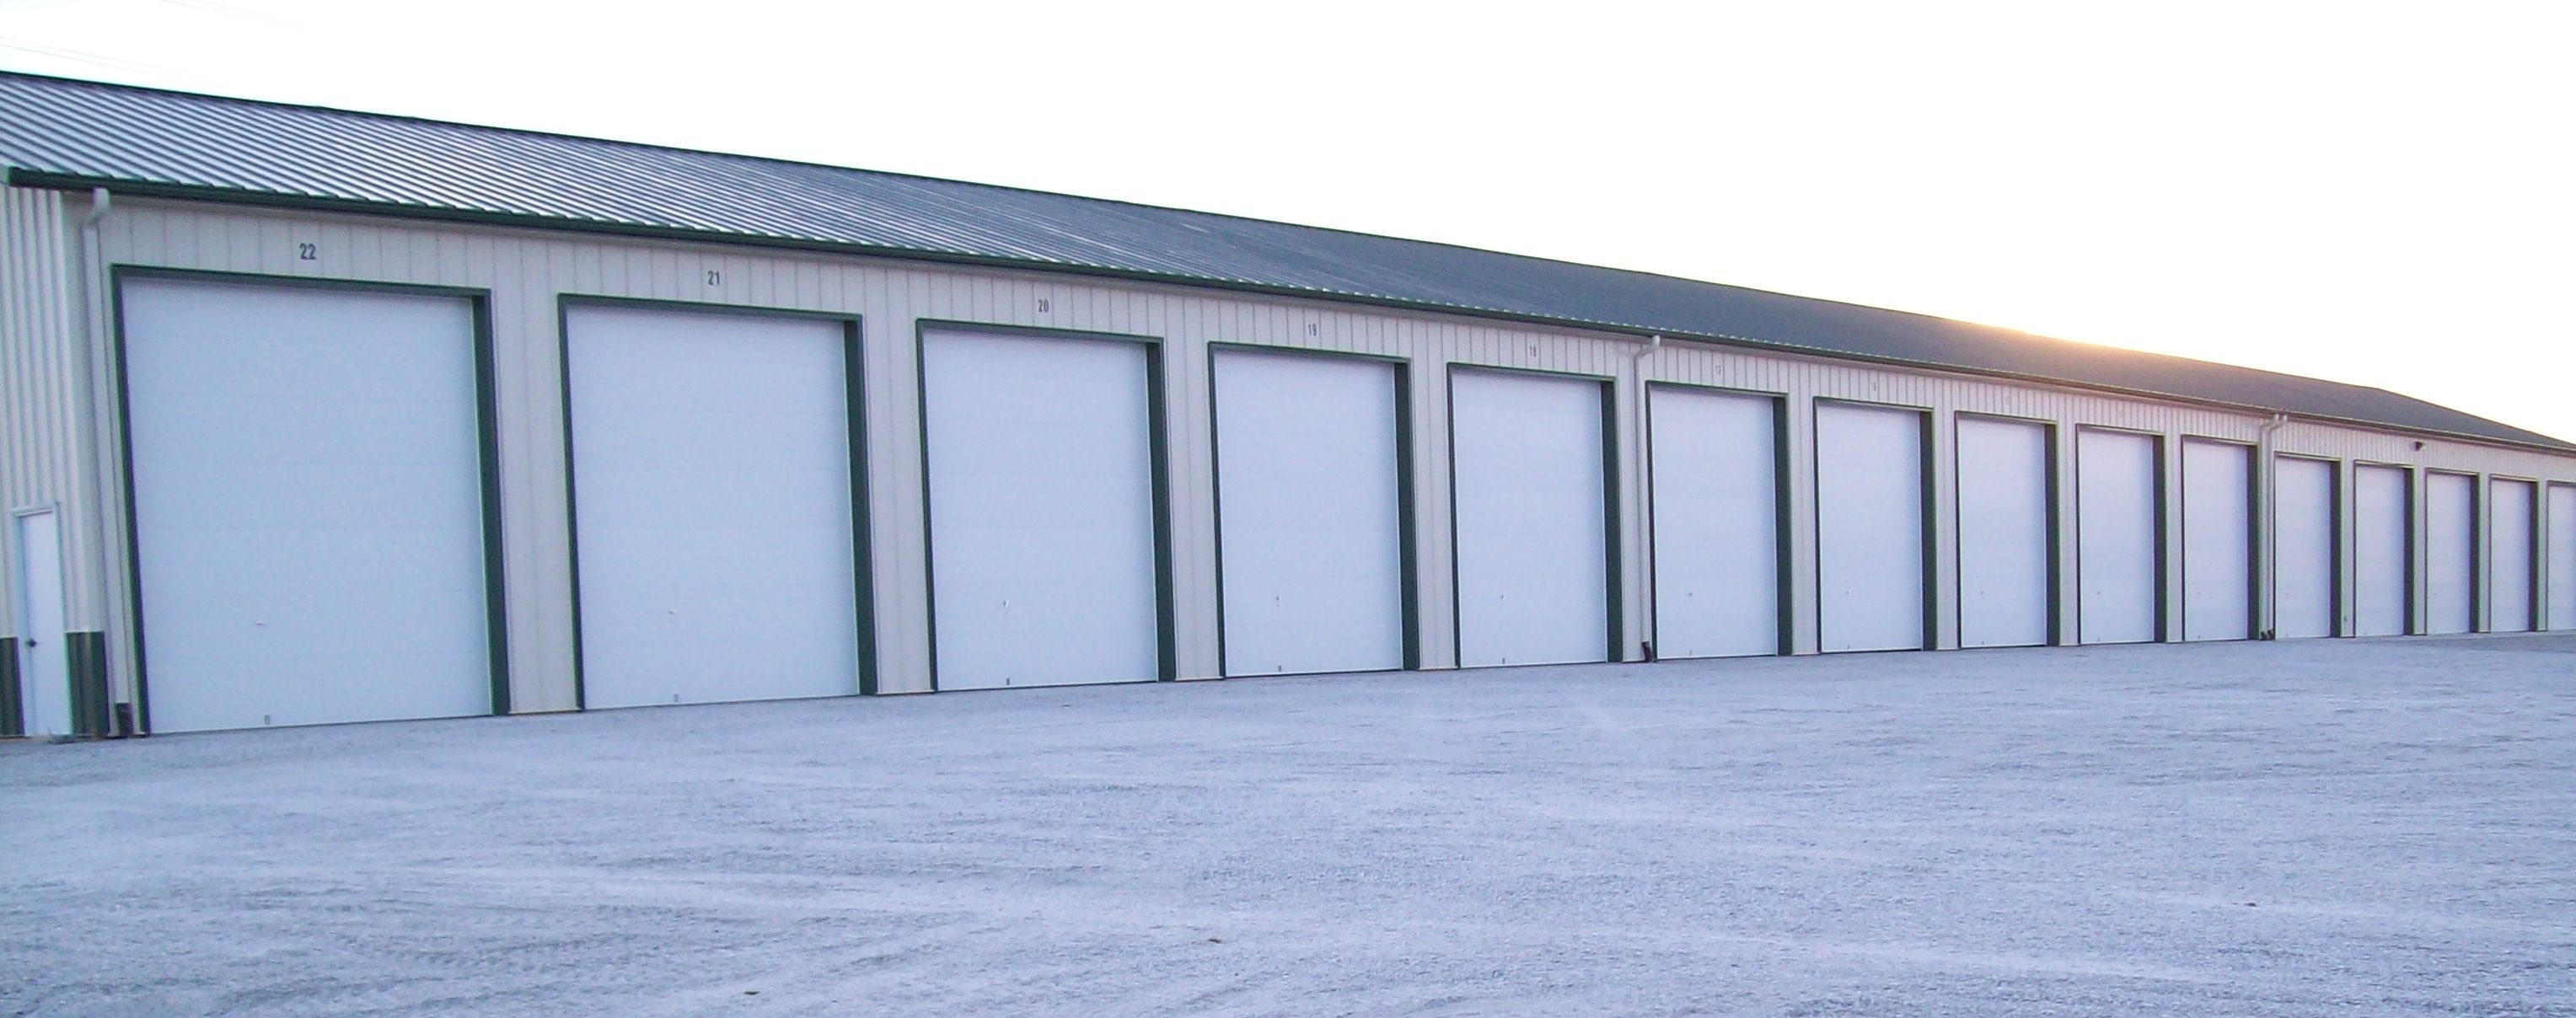 Picture of Storage Facility - No Hyperlink